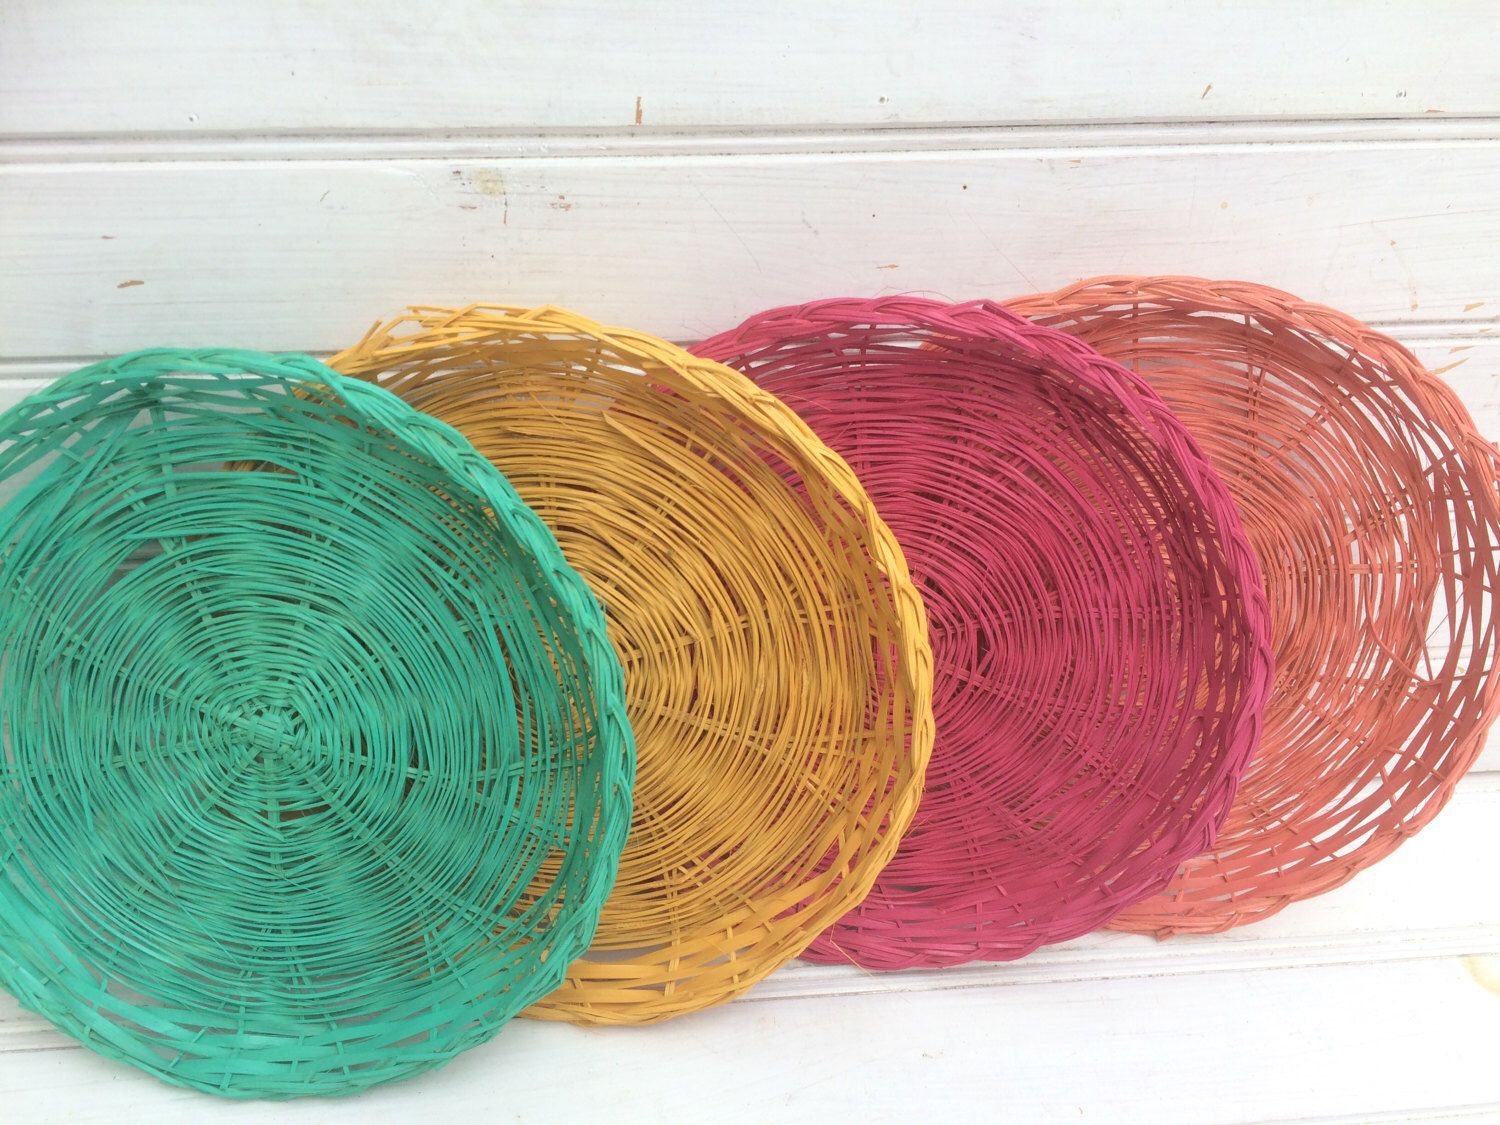 FOUR Wicker Paper Plate Holders Picnic Colorful Painted Upcycled. Raspberry Pink. Coral. Marigold & FOUR Wicker Paper Plate Holders Picnic Colorful Painted Upcycled ...